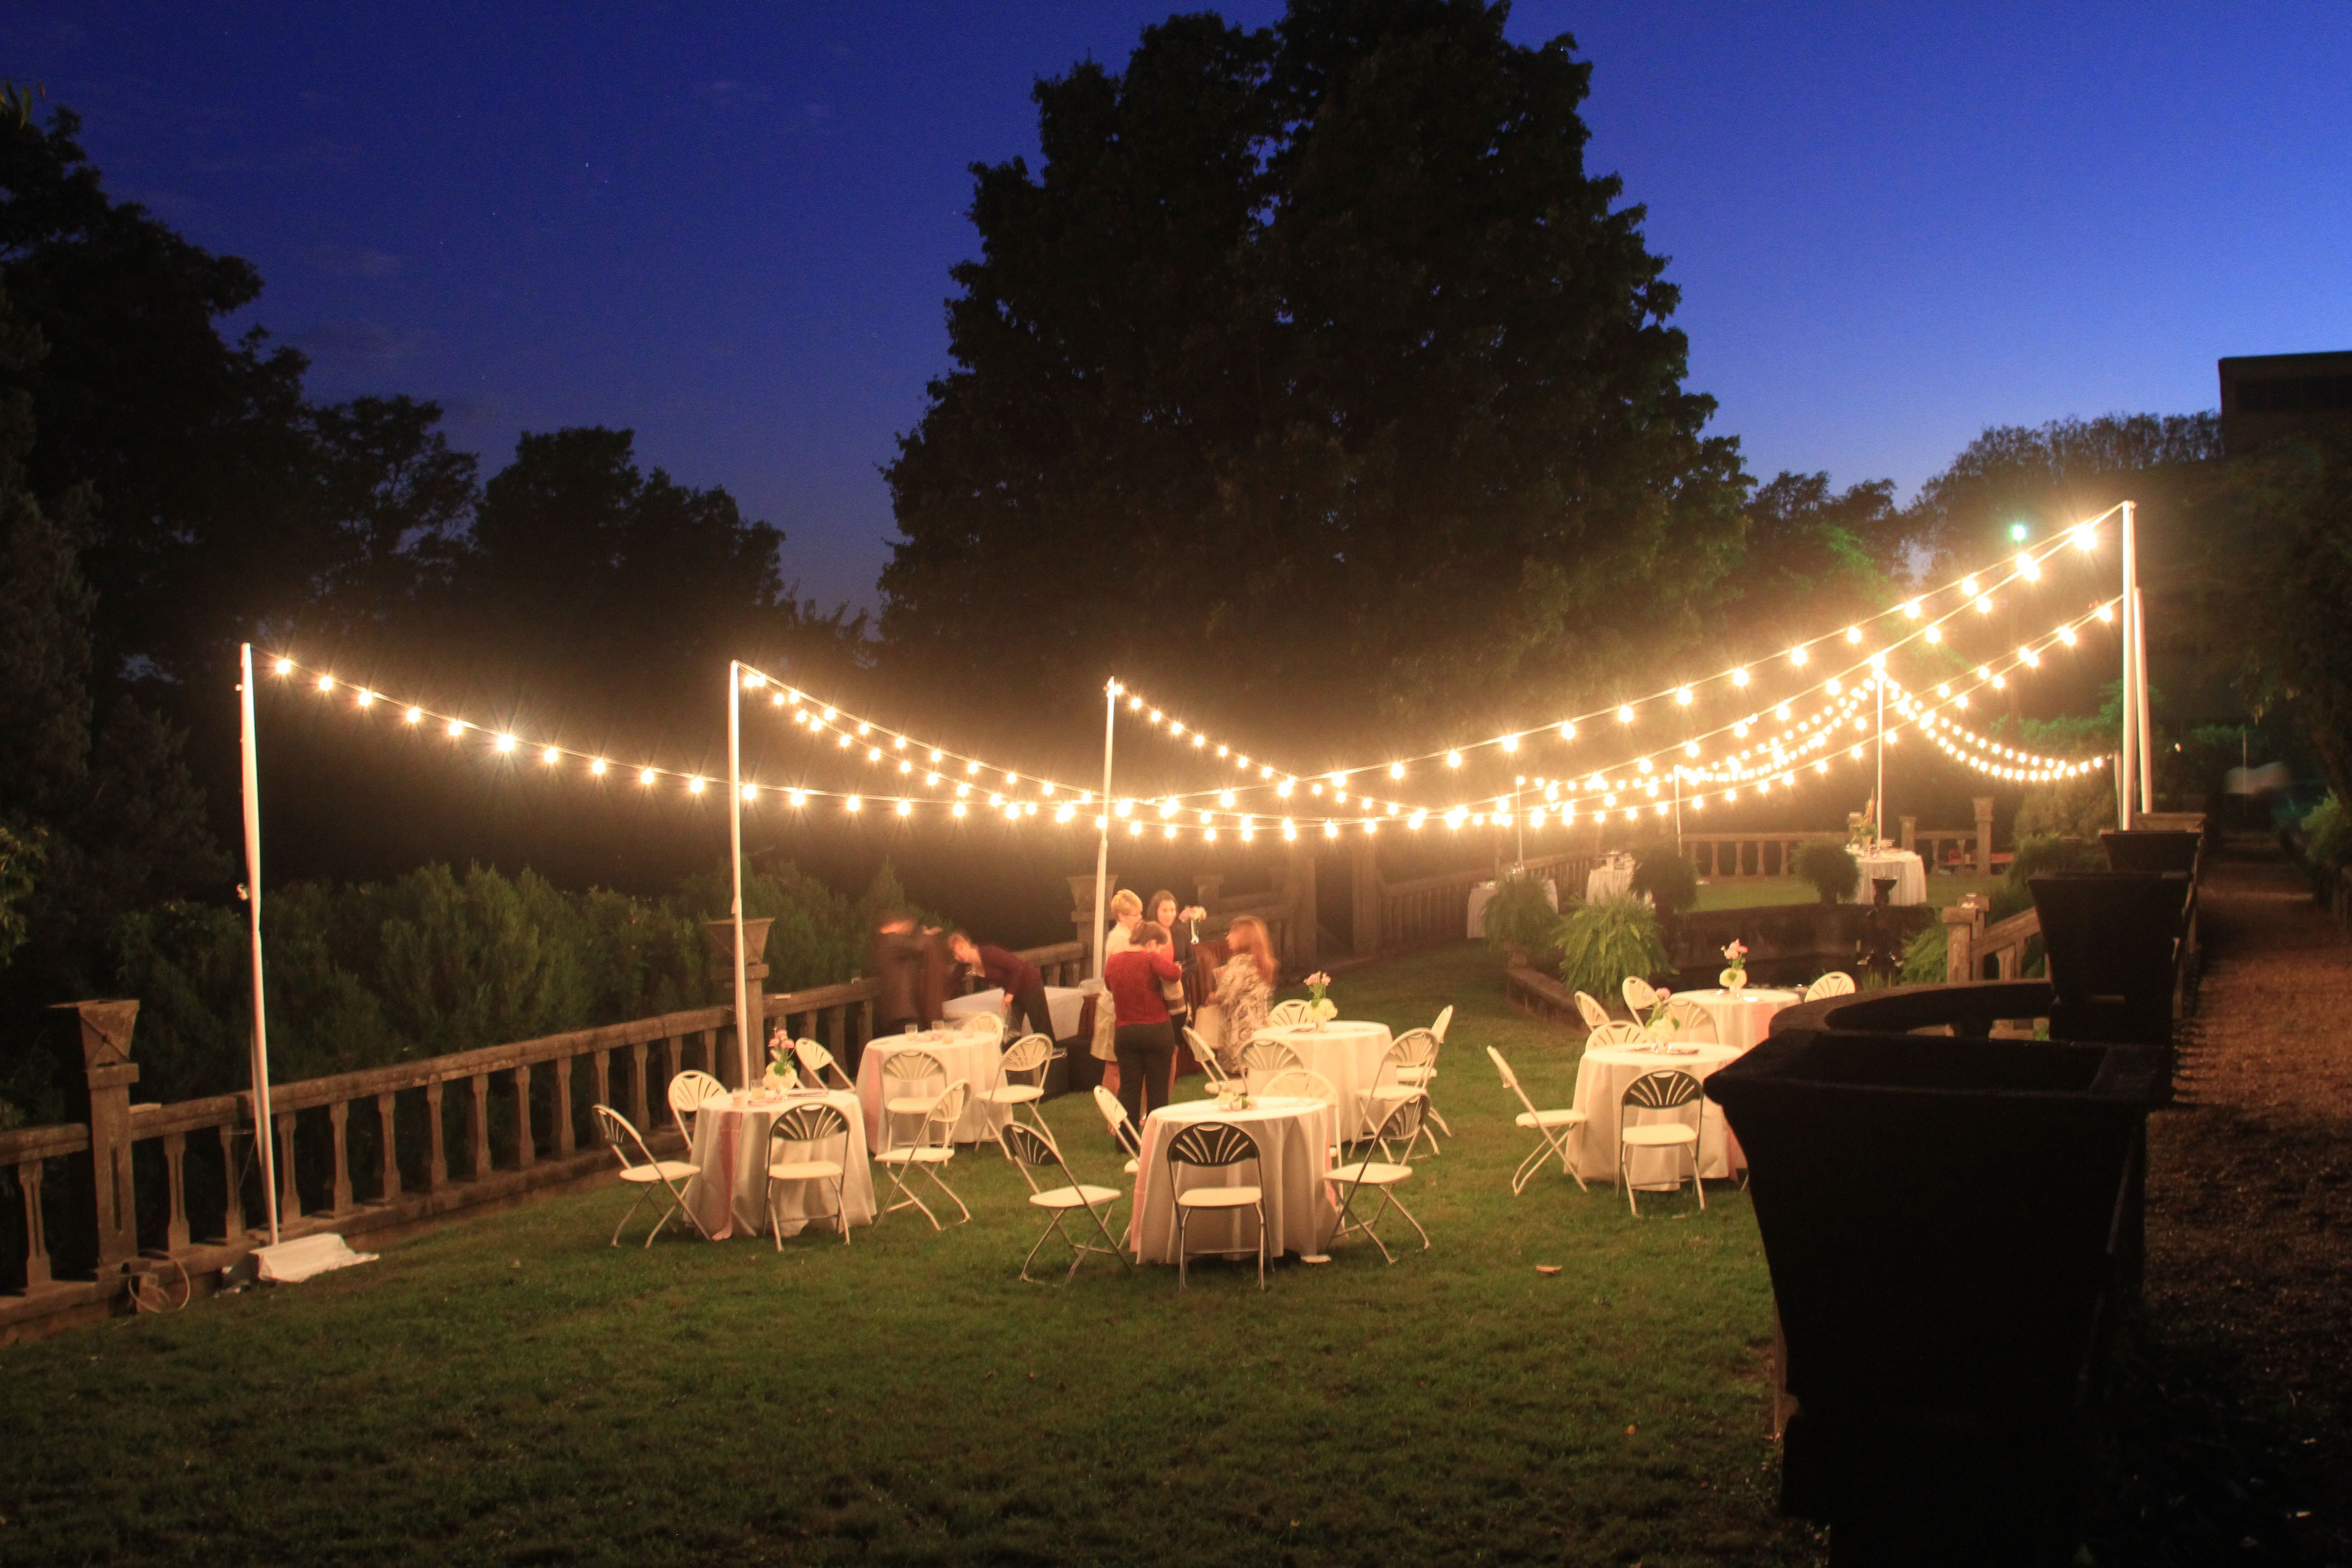 Simple But Effective Outdoor Reception Lighting Idea Weddingideas Outdoor Wedding Lighting Diy Wedding Lighting Diy Outdoor Weddings